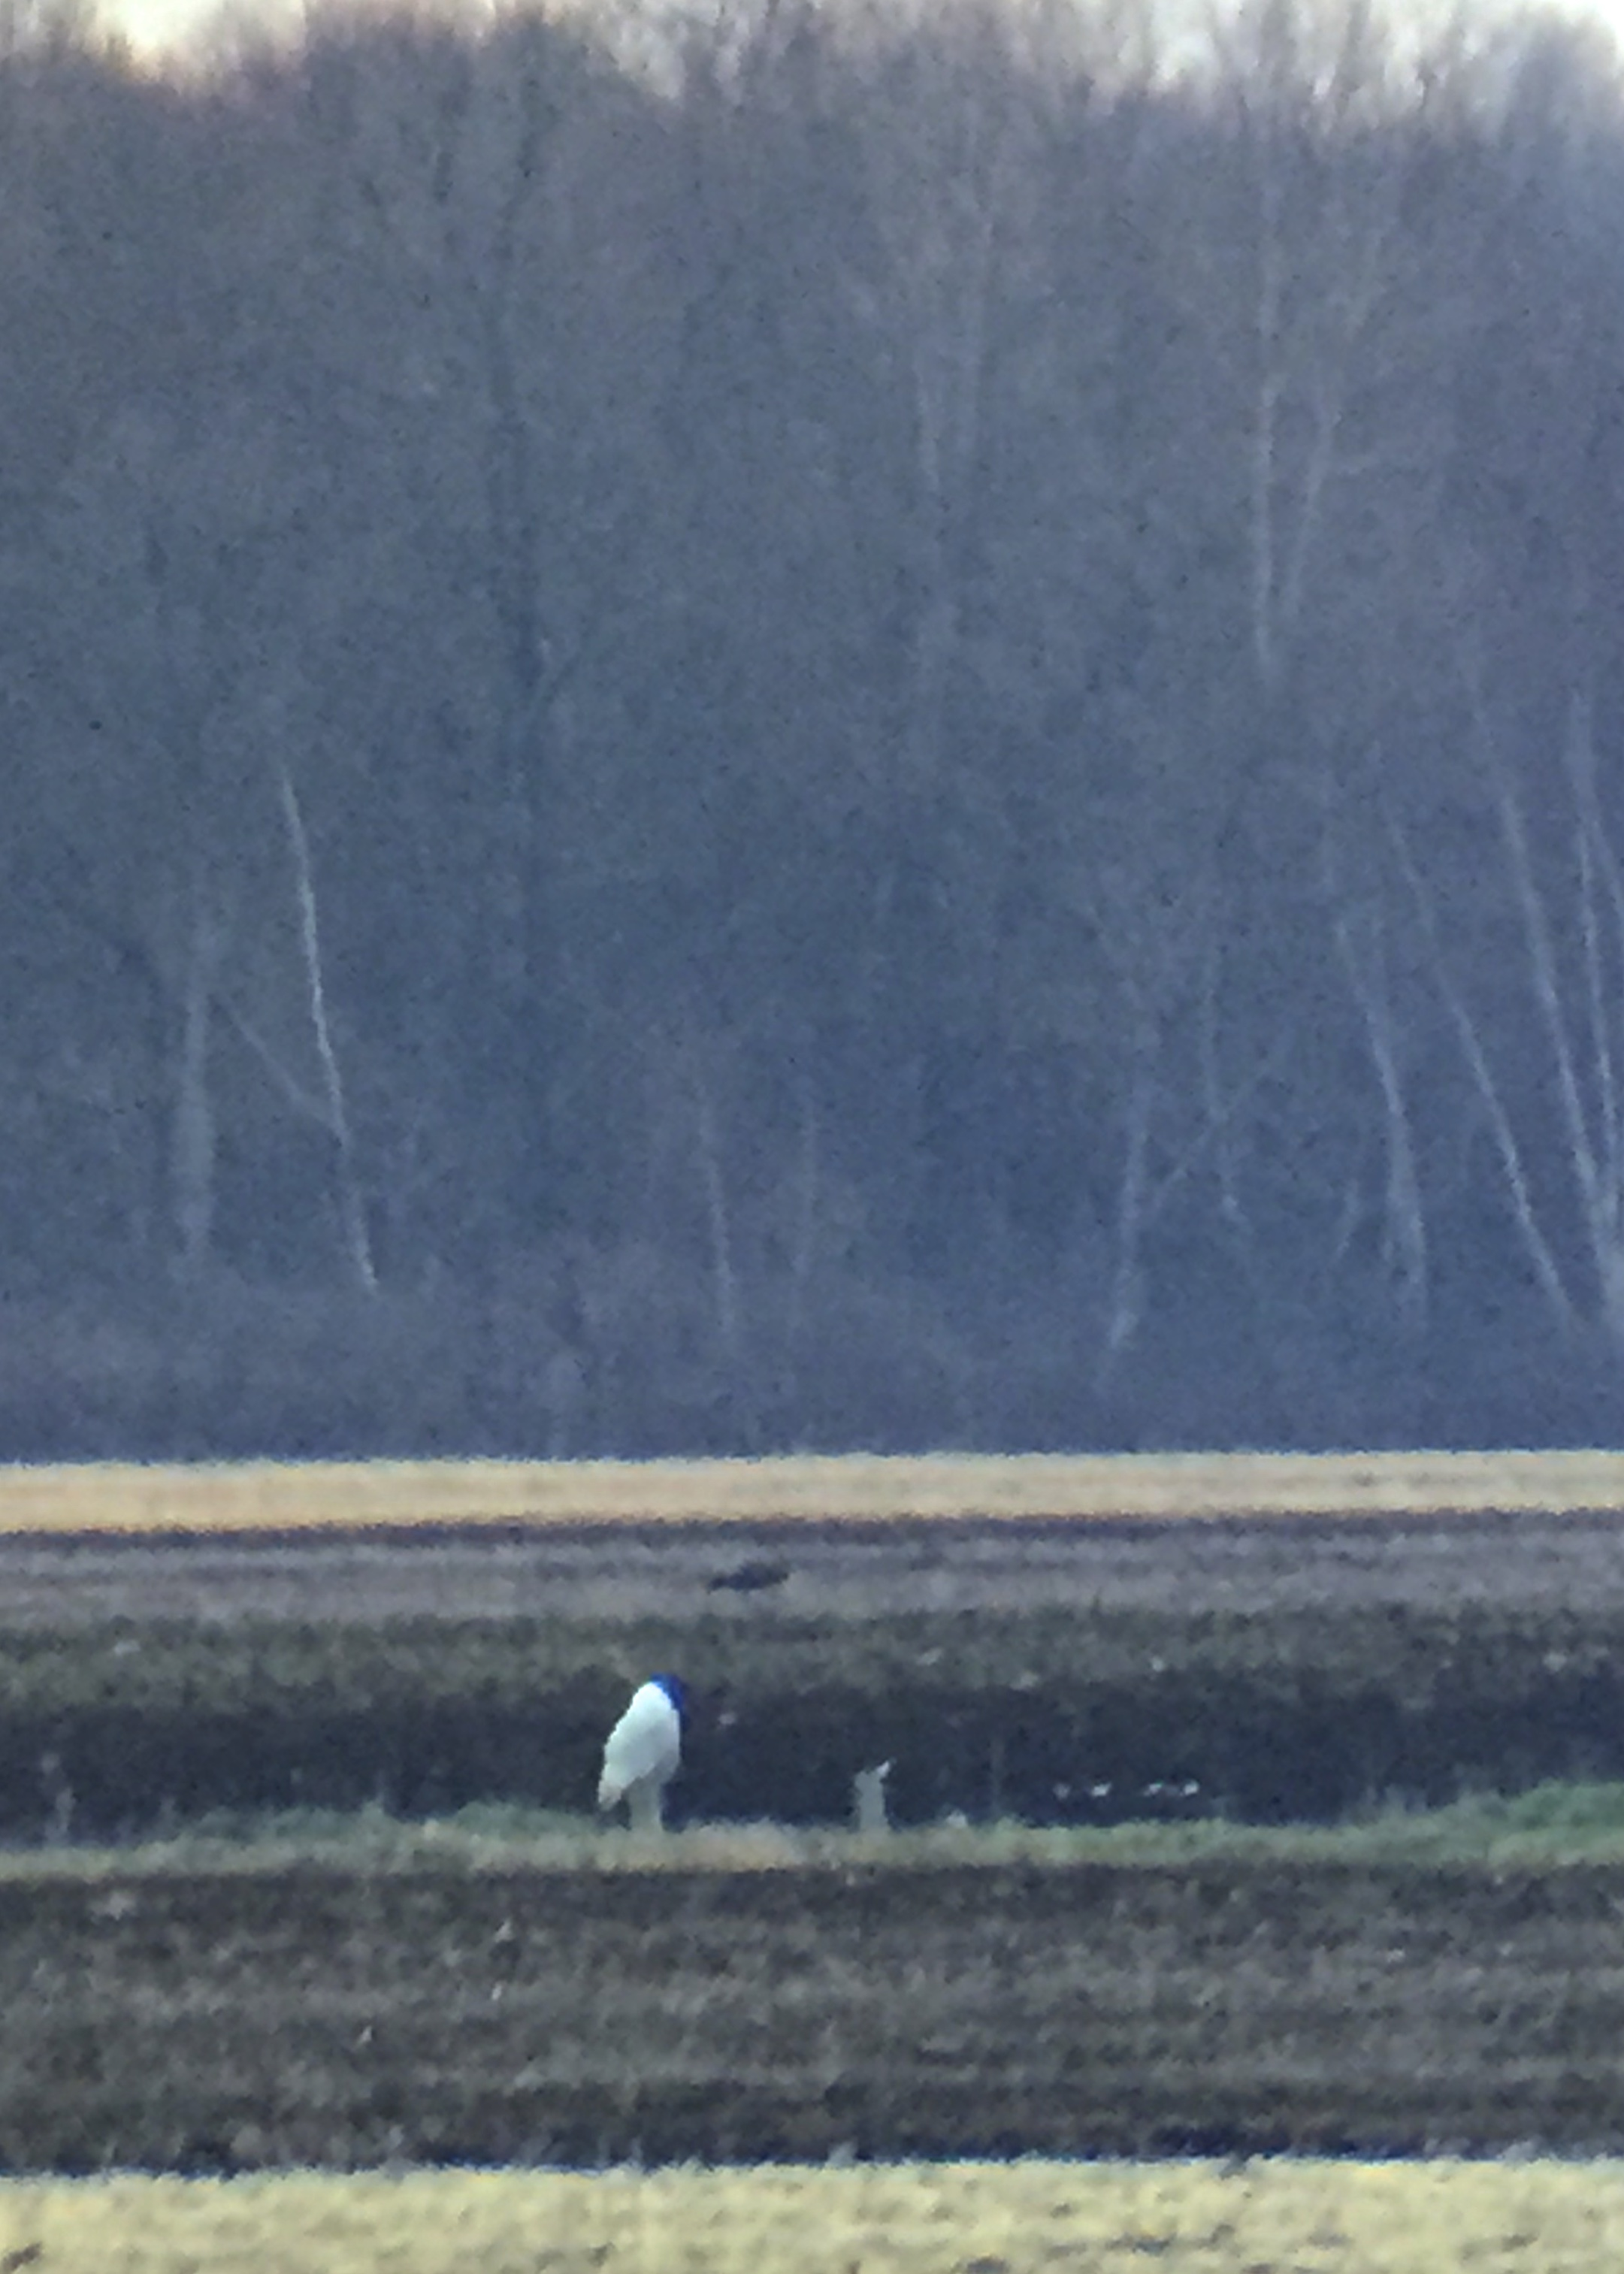 ~iPhone shot through the spotting scope - Snowy Owl in the Black Dirt, 1/14/16.~